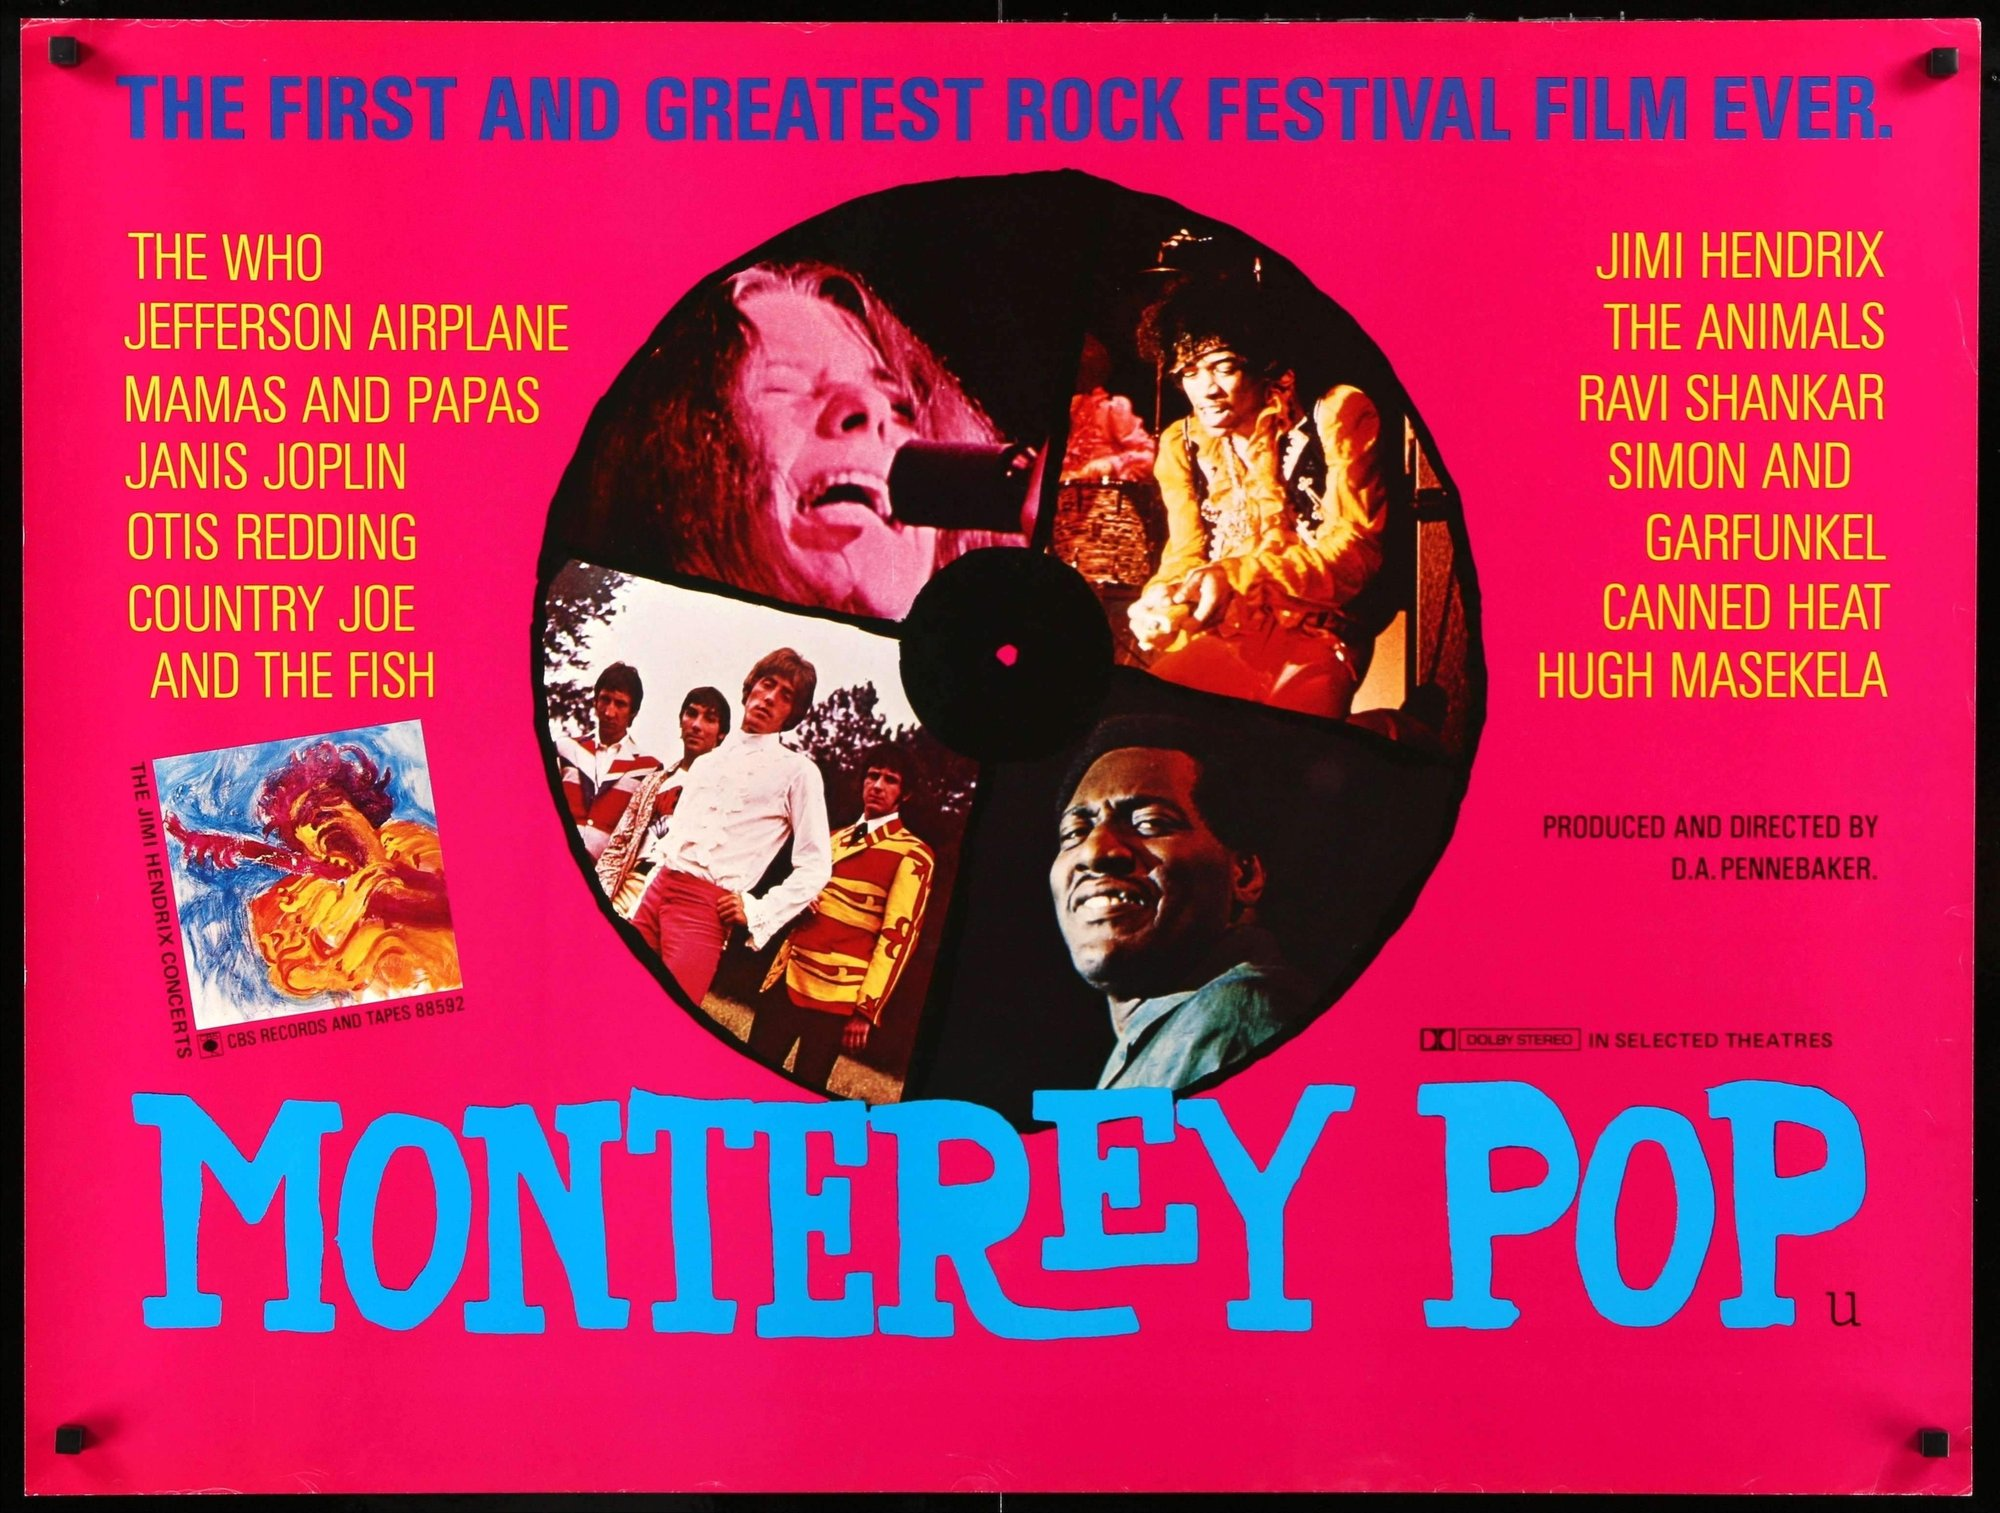 MONTEREY POP (1968 / 4-Track Magnetic Sound 35mm Print) - Sat Feb 16th / New Beverly Cinema, Los Angeles CARare 4-Track Mag Print! The first great & groovy rock festival film! D.A. Pennebaker's legendary concert documentary showcases the historic, pre-Woodstock 1967 Monterey International Pop Festival including incendiary performances by Janis Joplin, The Who, Jefferson Airplane, Mamas and Papas, Otis Redding, Country Joe and the Fish, Jimi Hendrix, The Animals, Ravi Shankar, Simon and Garfunkel, Canned Heat and Hugh Masekela!More info HERE